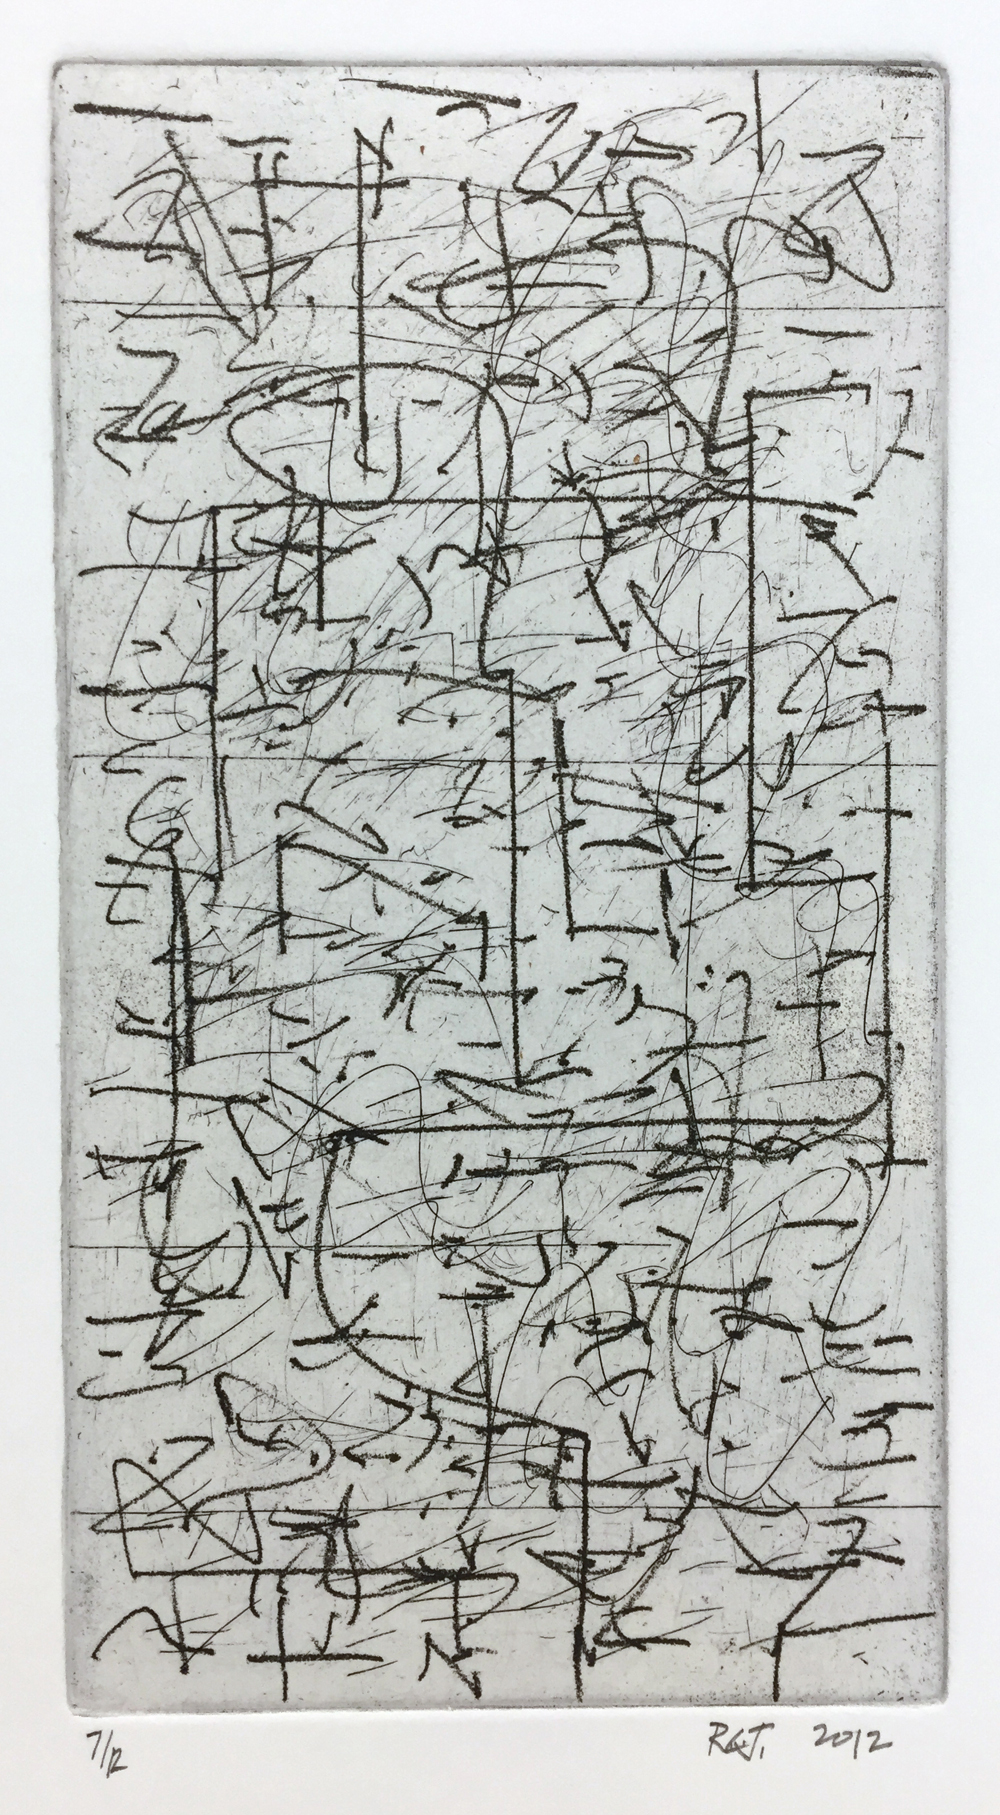 Robert C Jones, Untitled, 2012, etching and drypoint, edition of 12, 9 x 4.75 inches, $600.